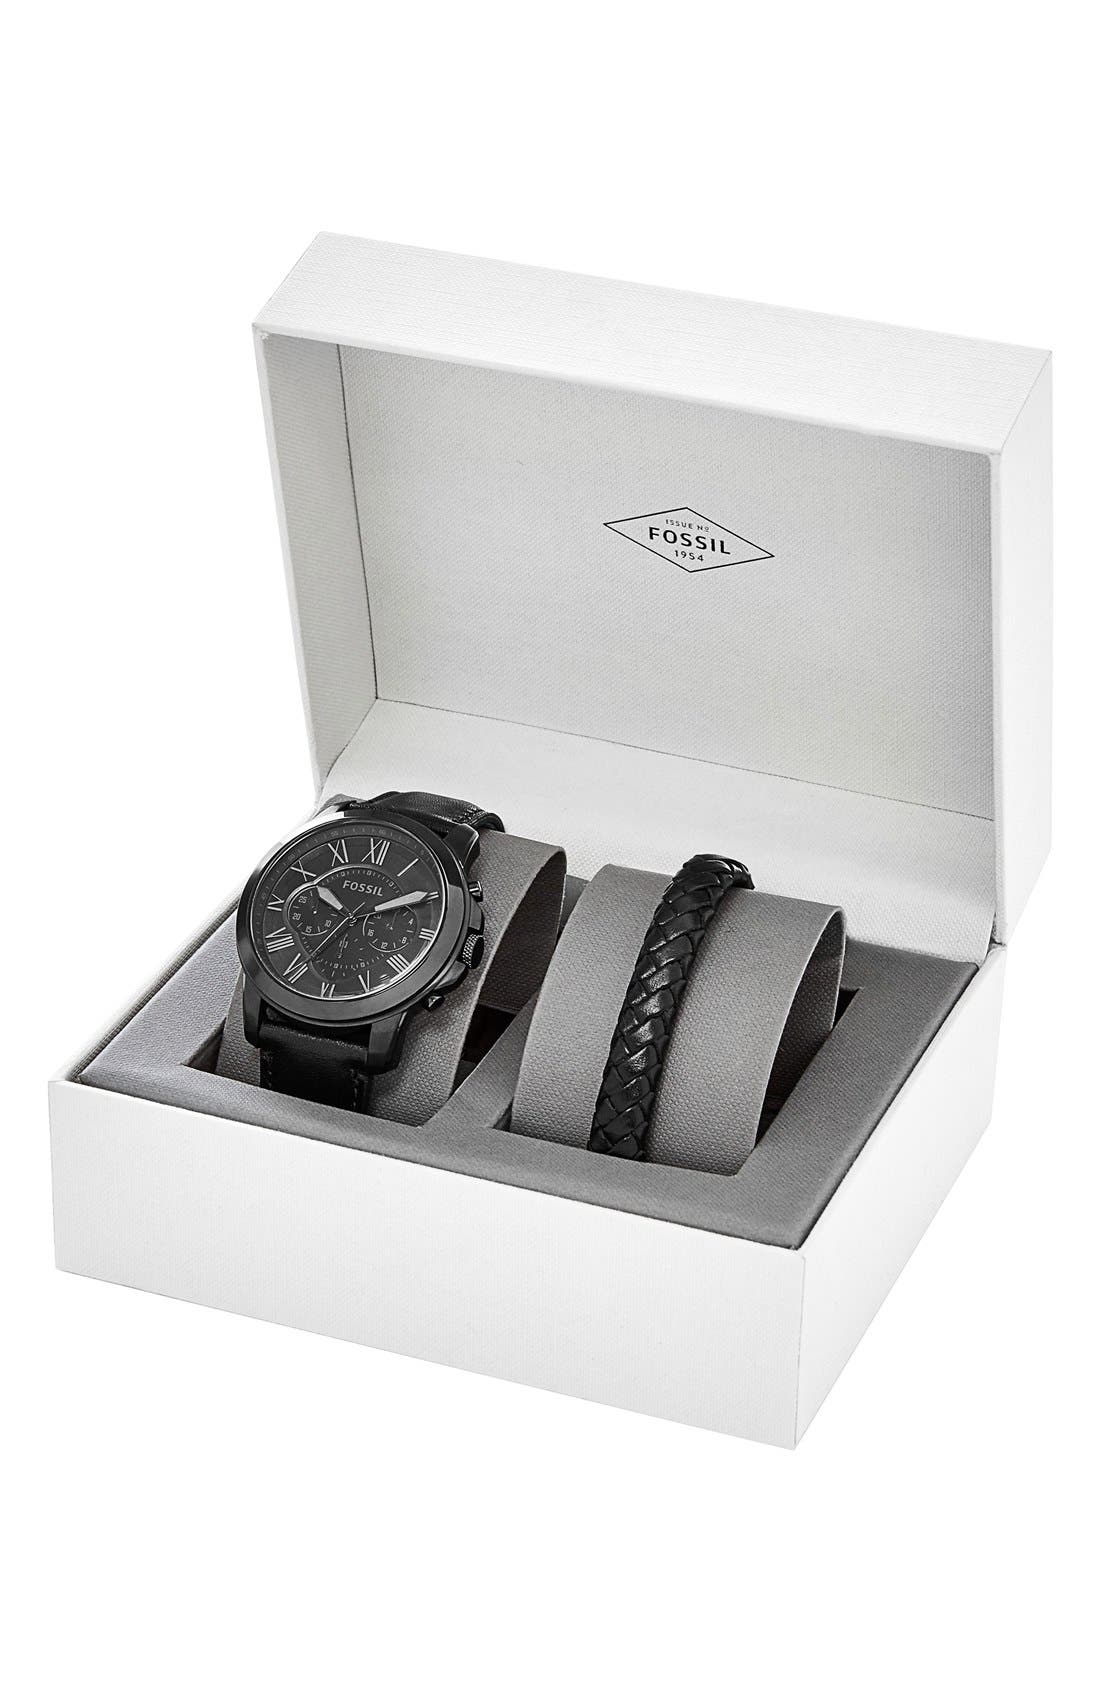 Alternate Image 3  - Fossil 'Grant' Watch & Leather Strap Set